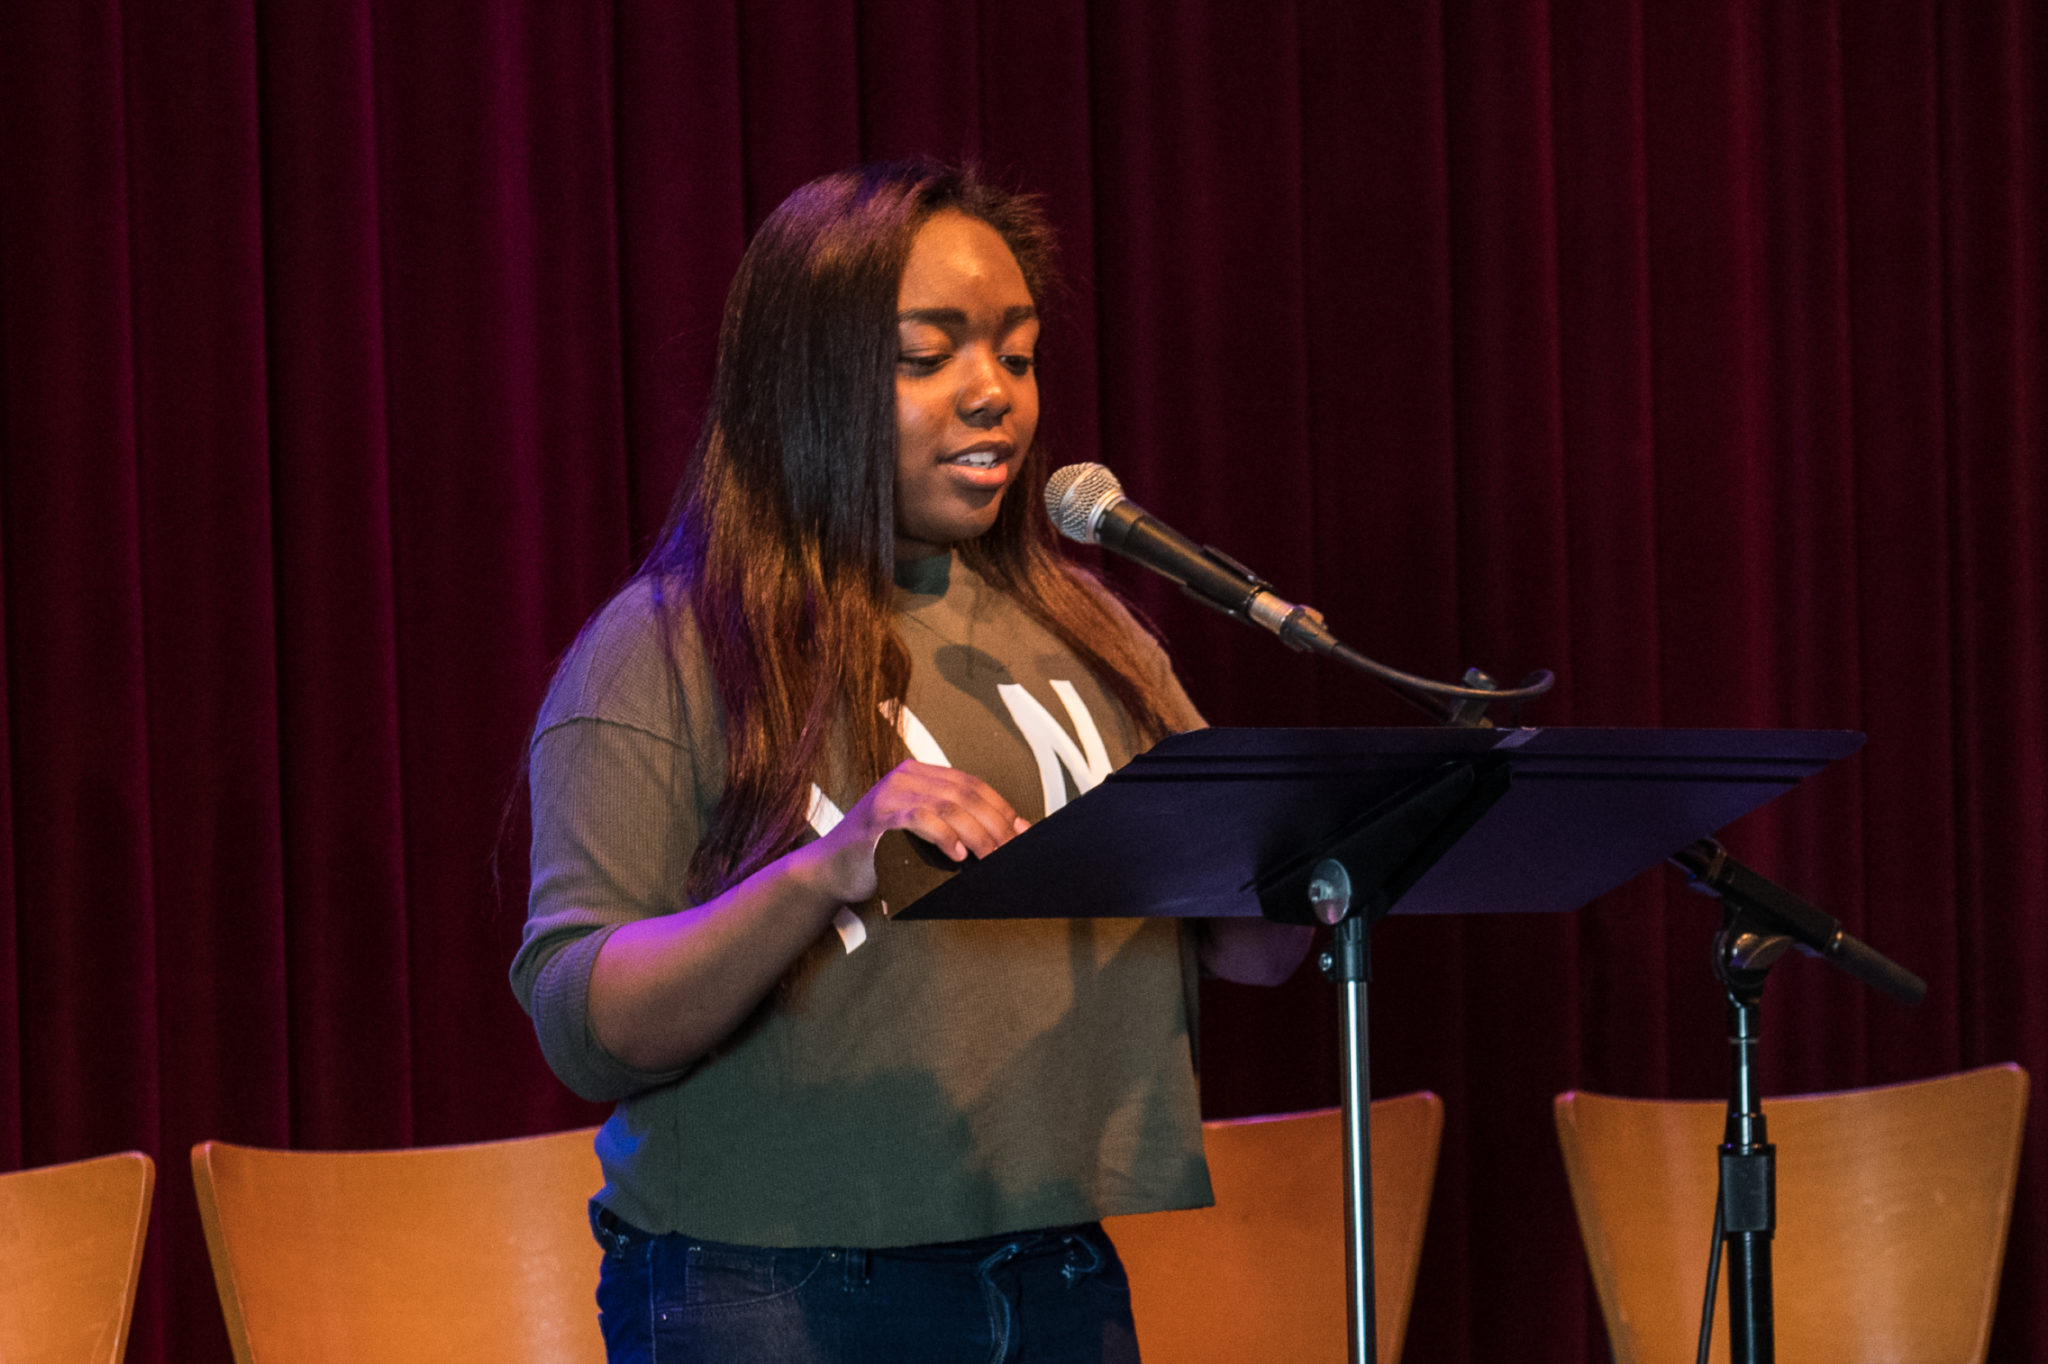 A student stands behind a mic and a music stand to present her poem onstage.